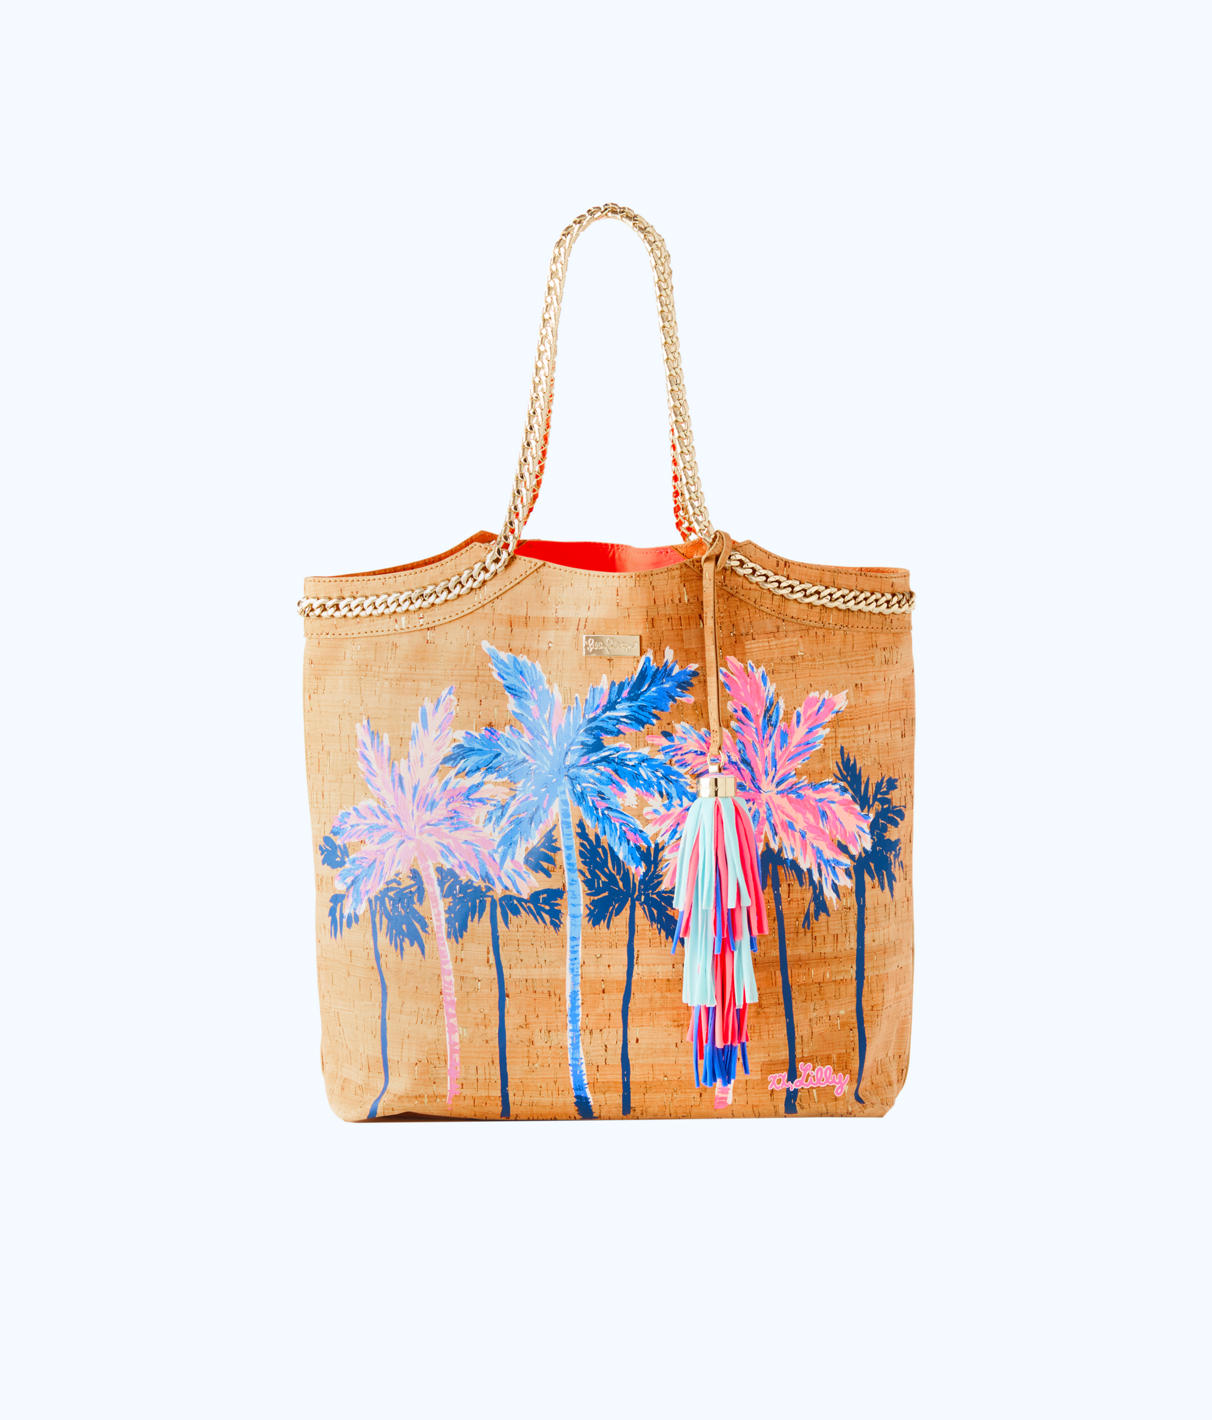 Lilly Pulitzer Lilly Pulitzer Printed Beach Comber Cork Tote